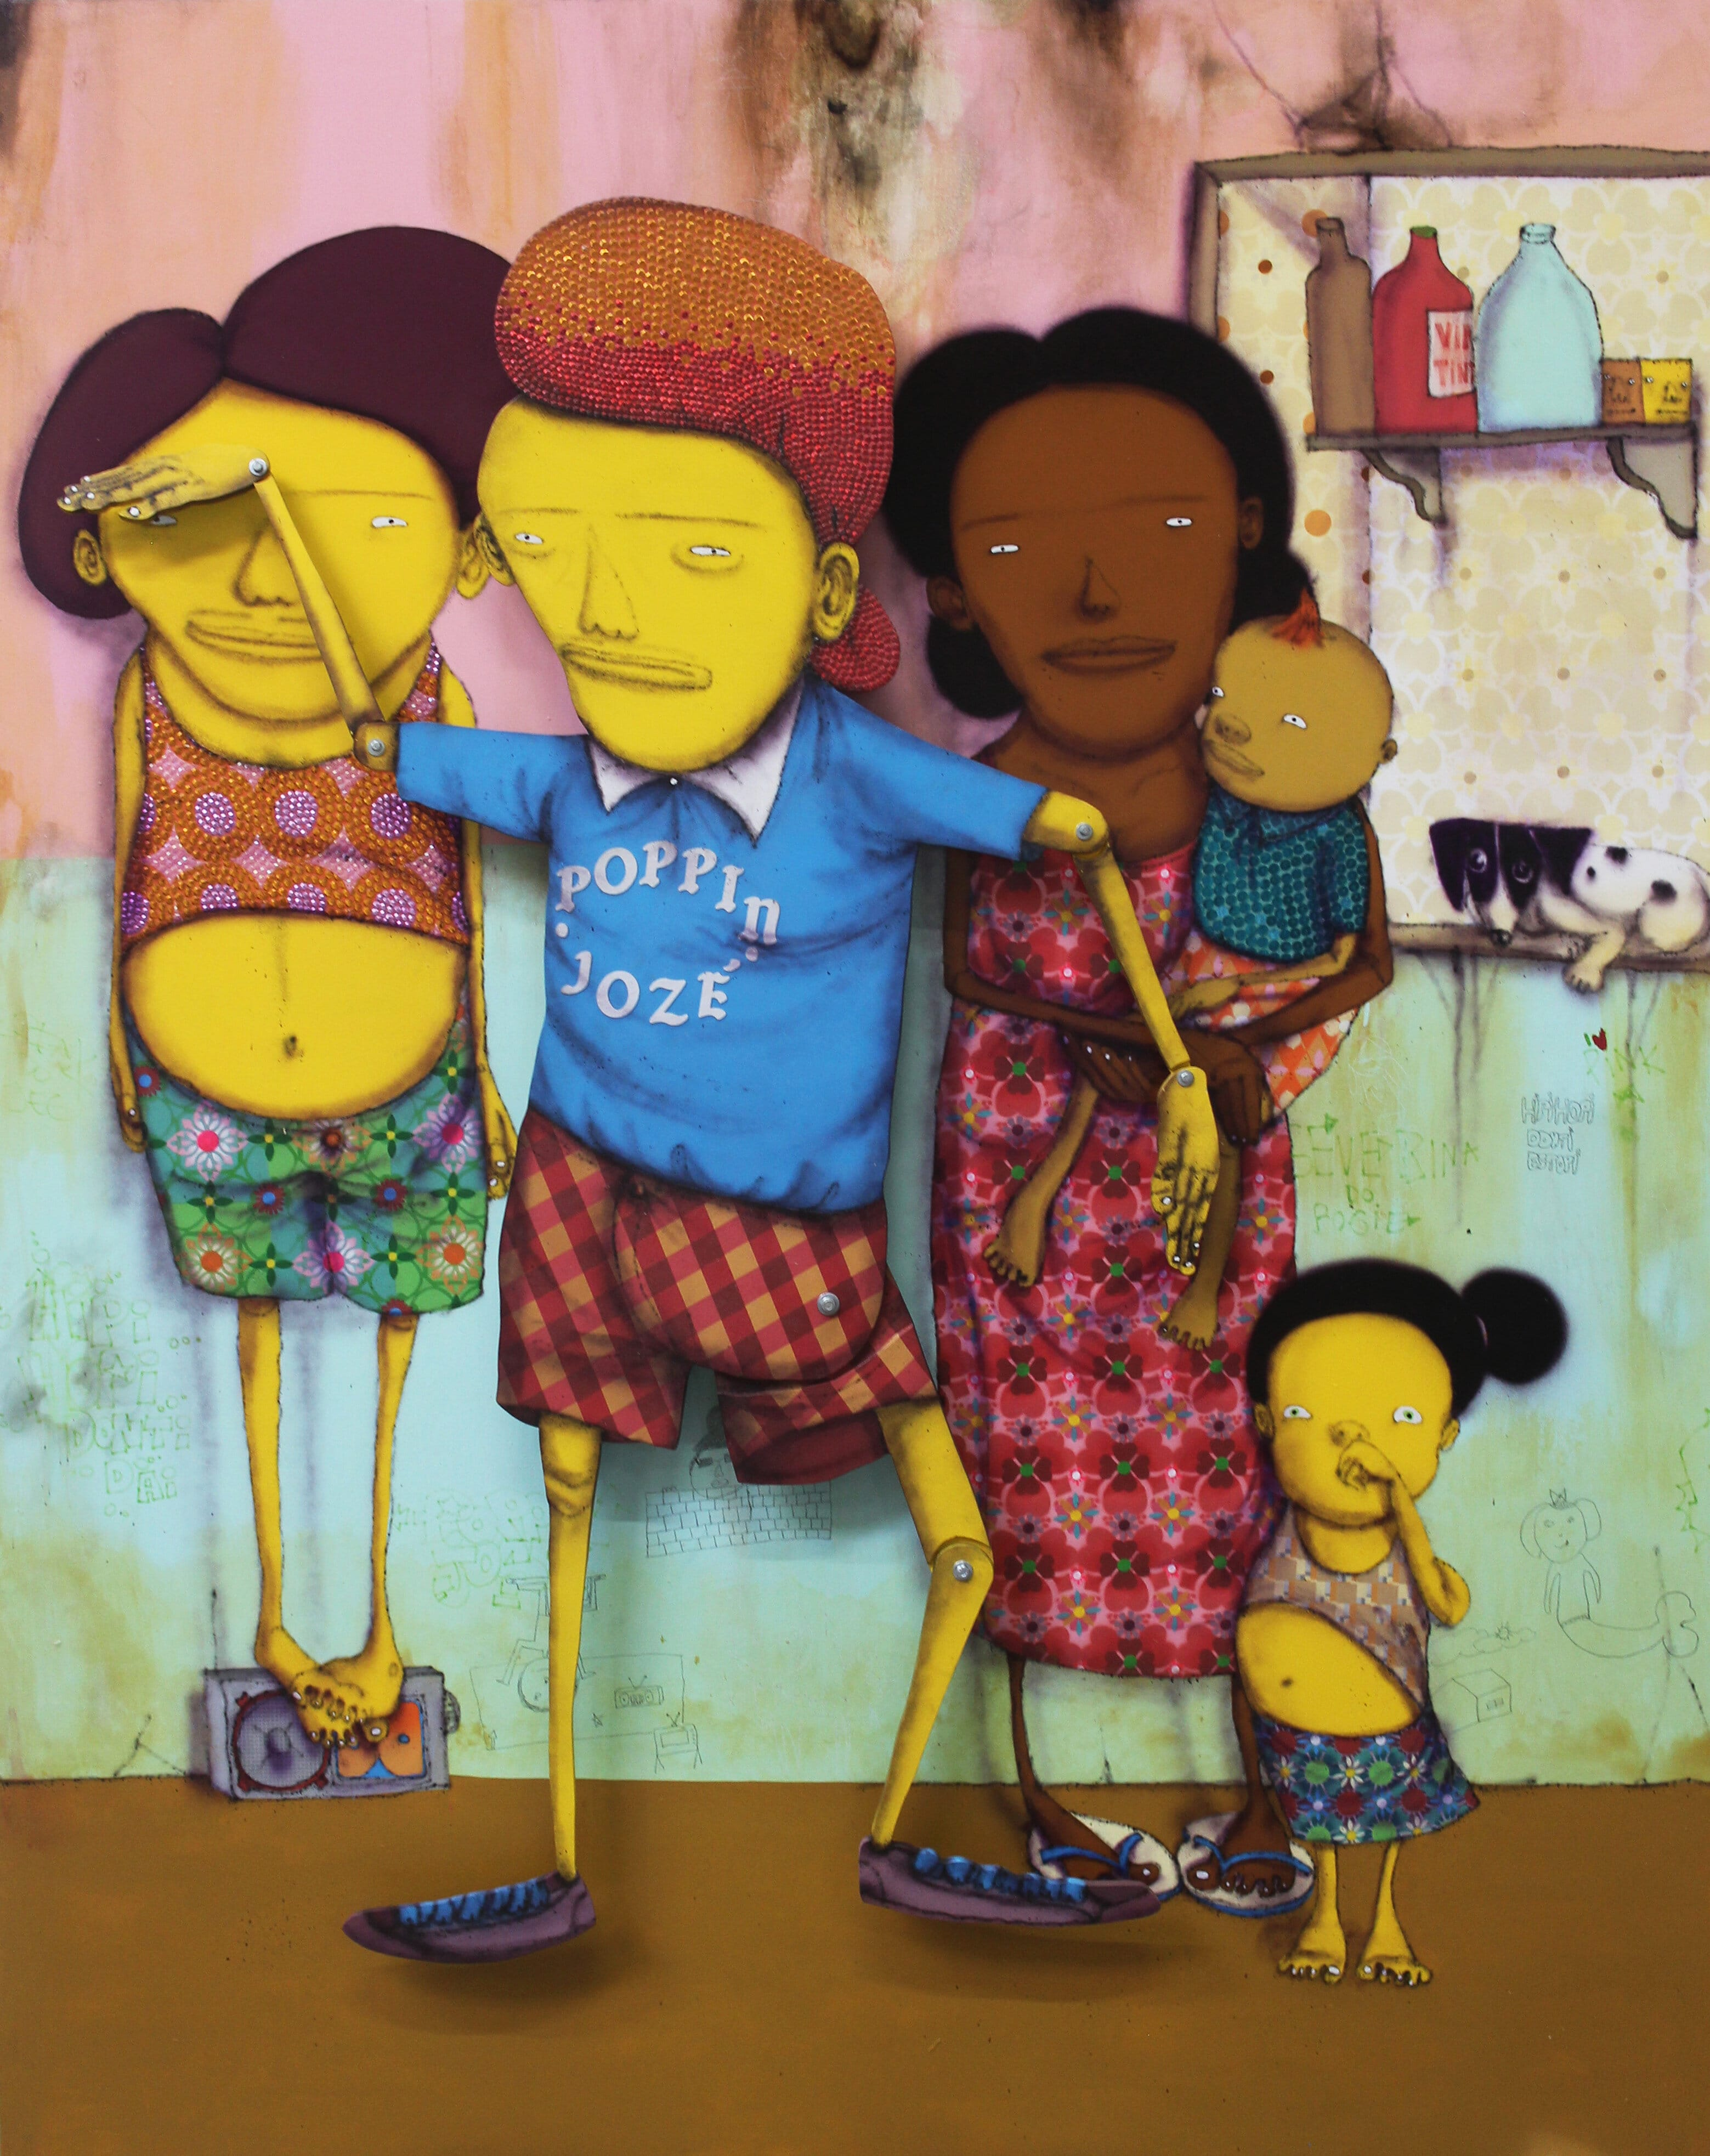 OSGEMEOS O Dia da Festa de Break (The Break Party's Day), 2016 204 x 164 x 20 cm